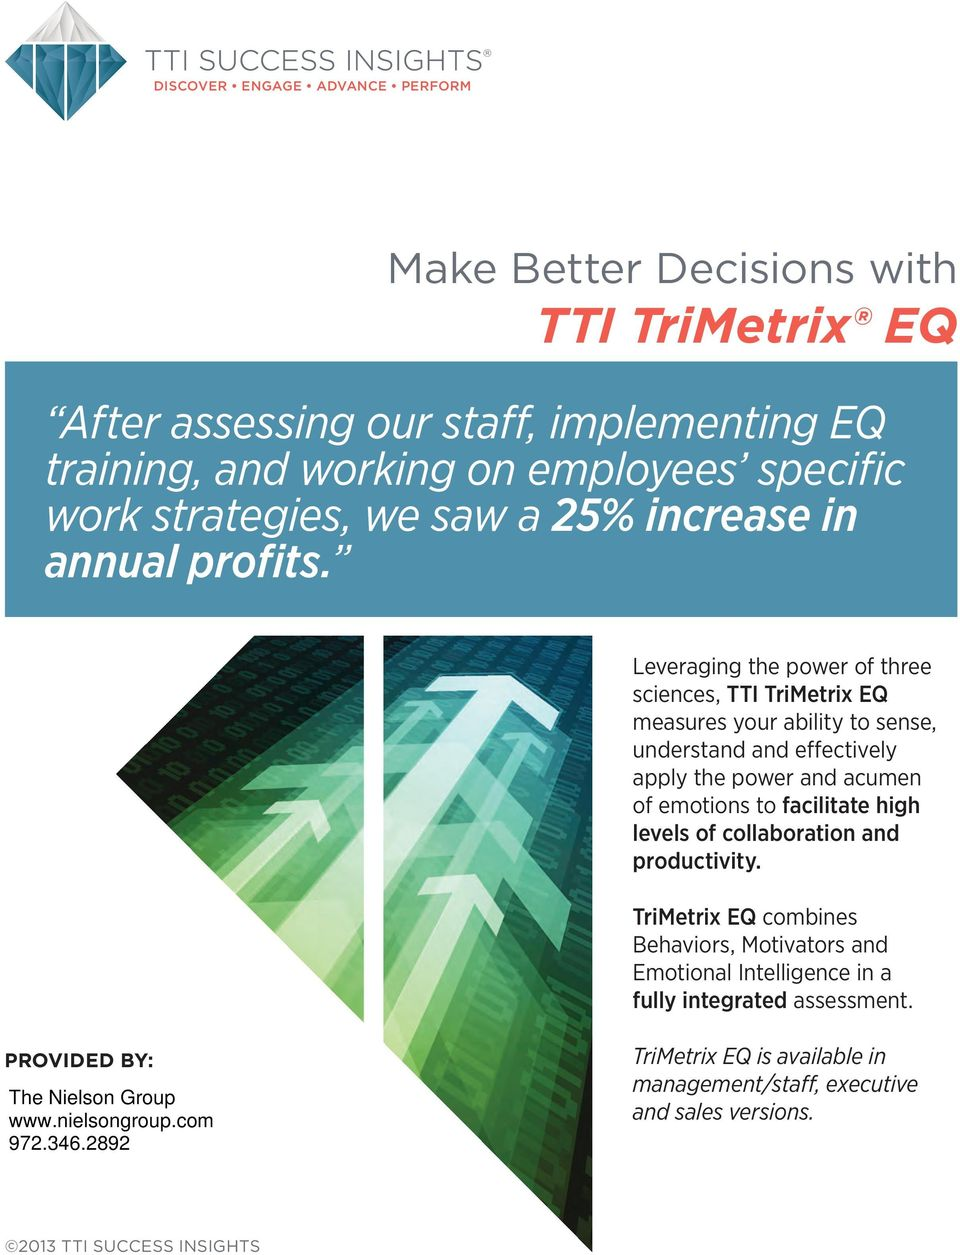 Leveraging the power of three sciences, TTI TriMetrix EQ measures your ability to sense, understand and effectively apply the power and acumen of emotions to